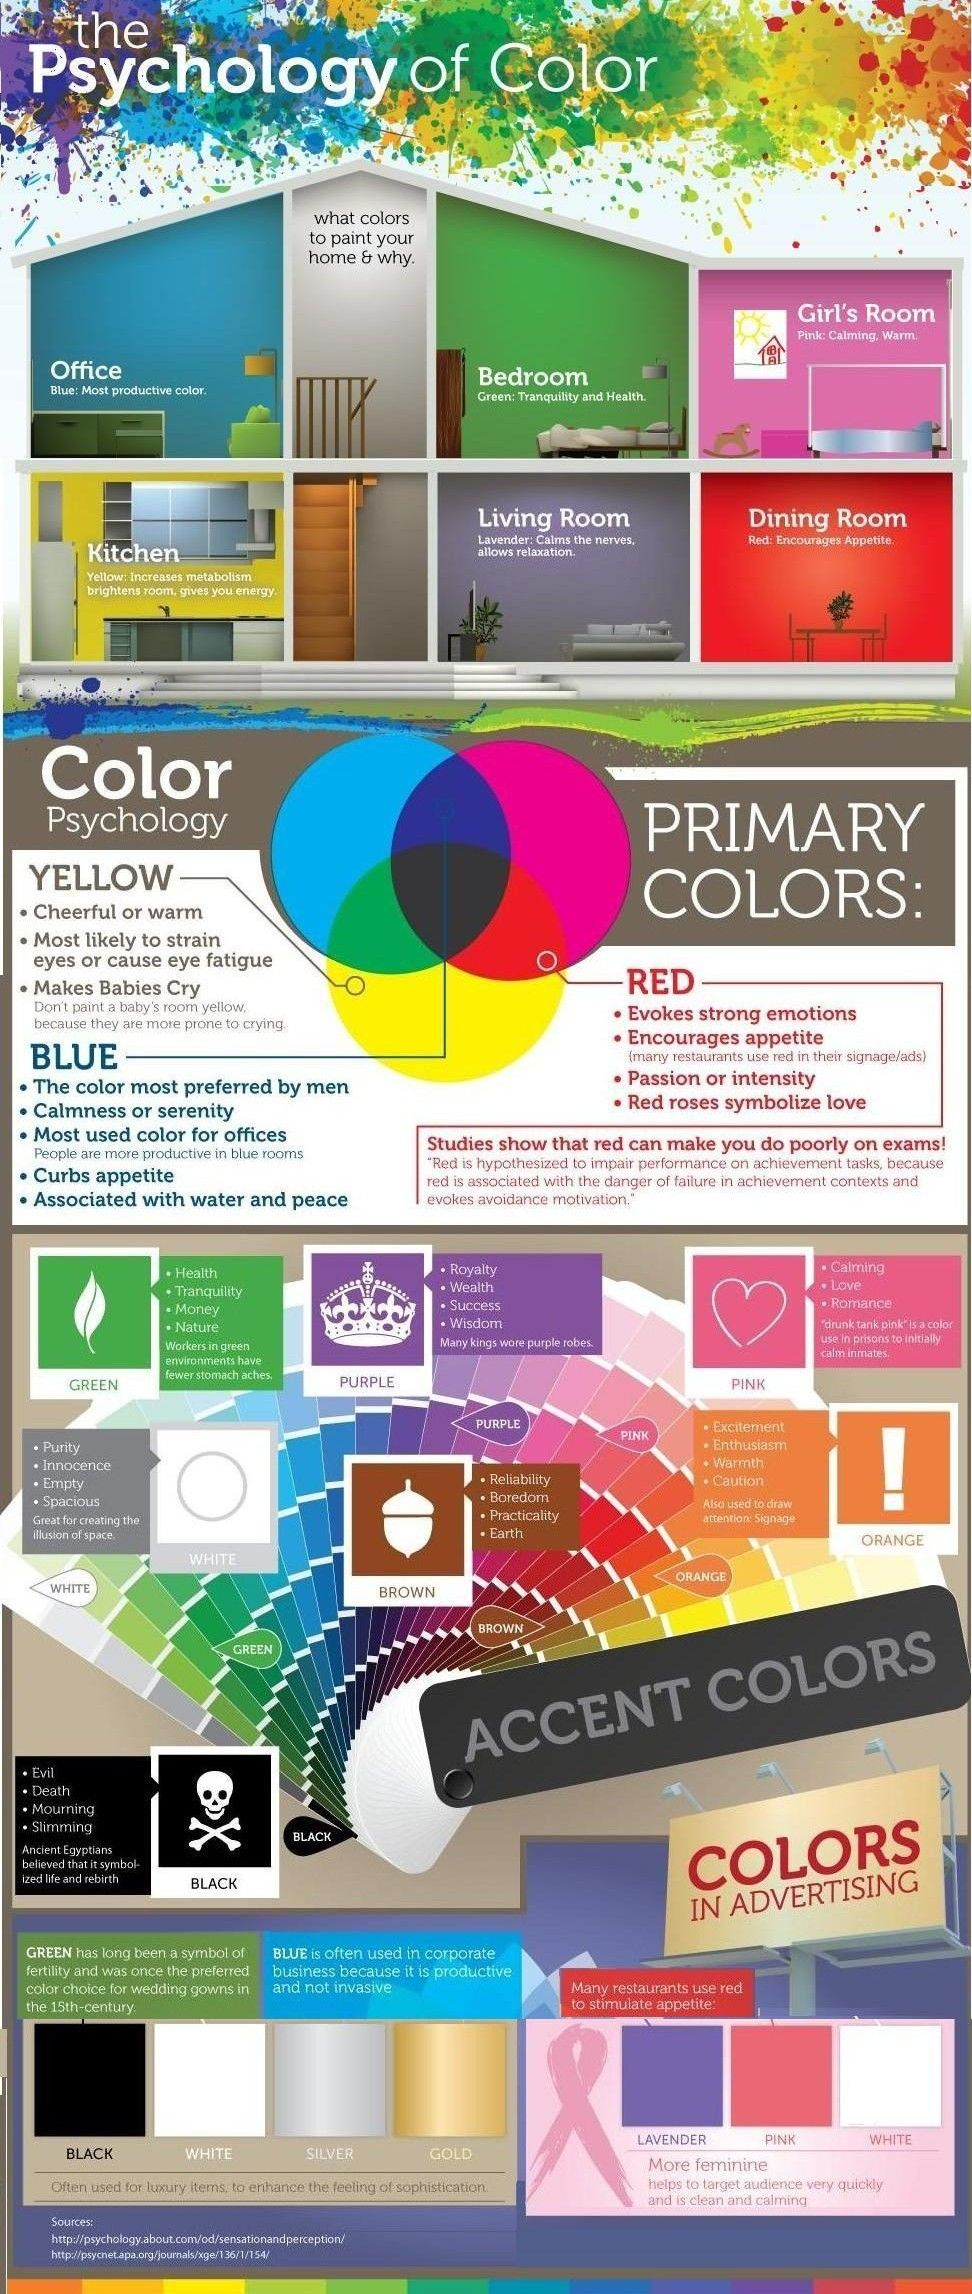 Can Color Affect Your Mood And Behavior With Images Color